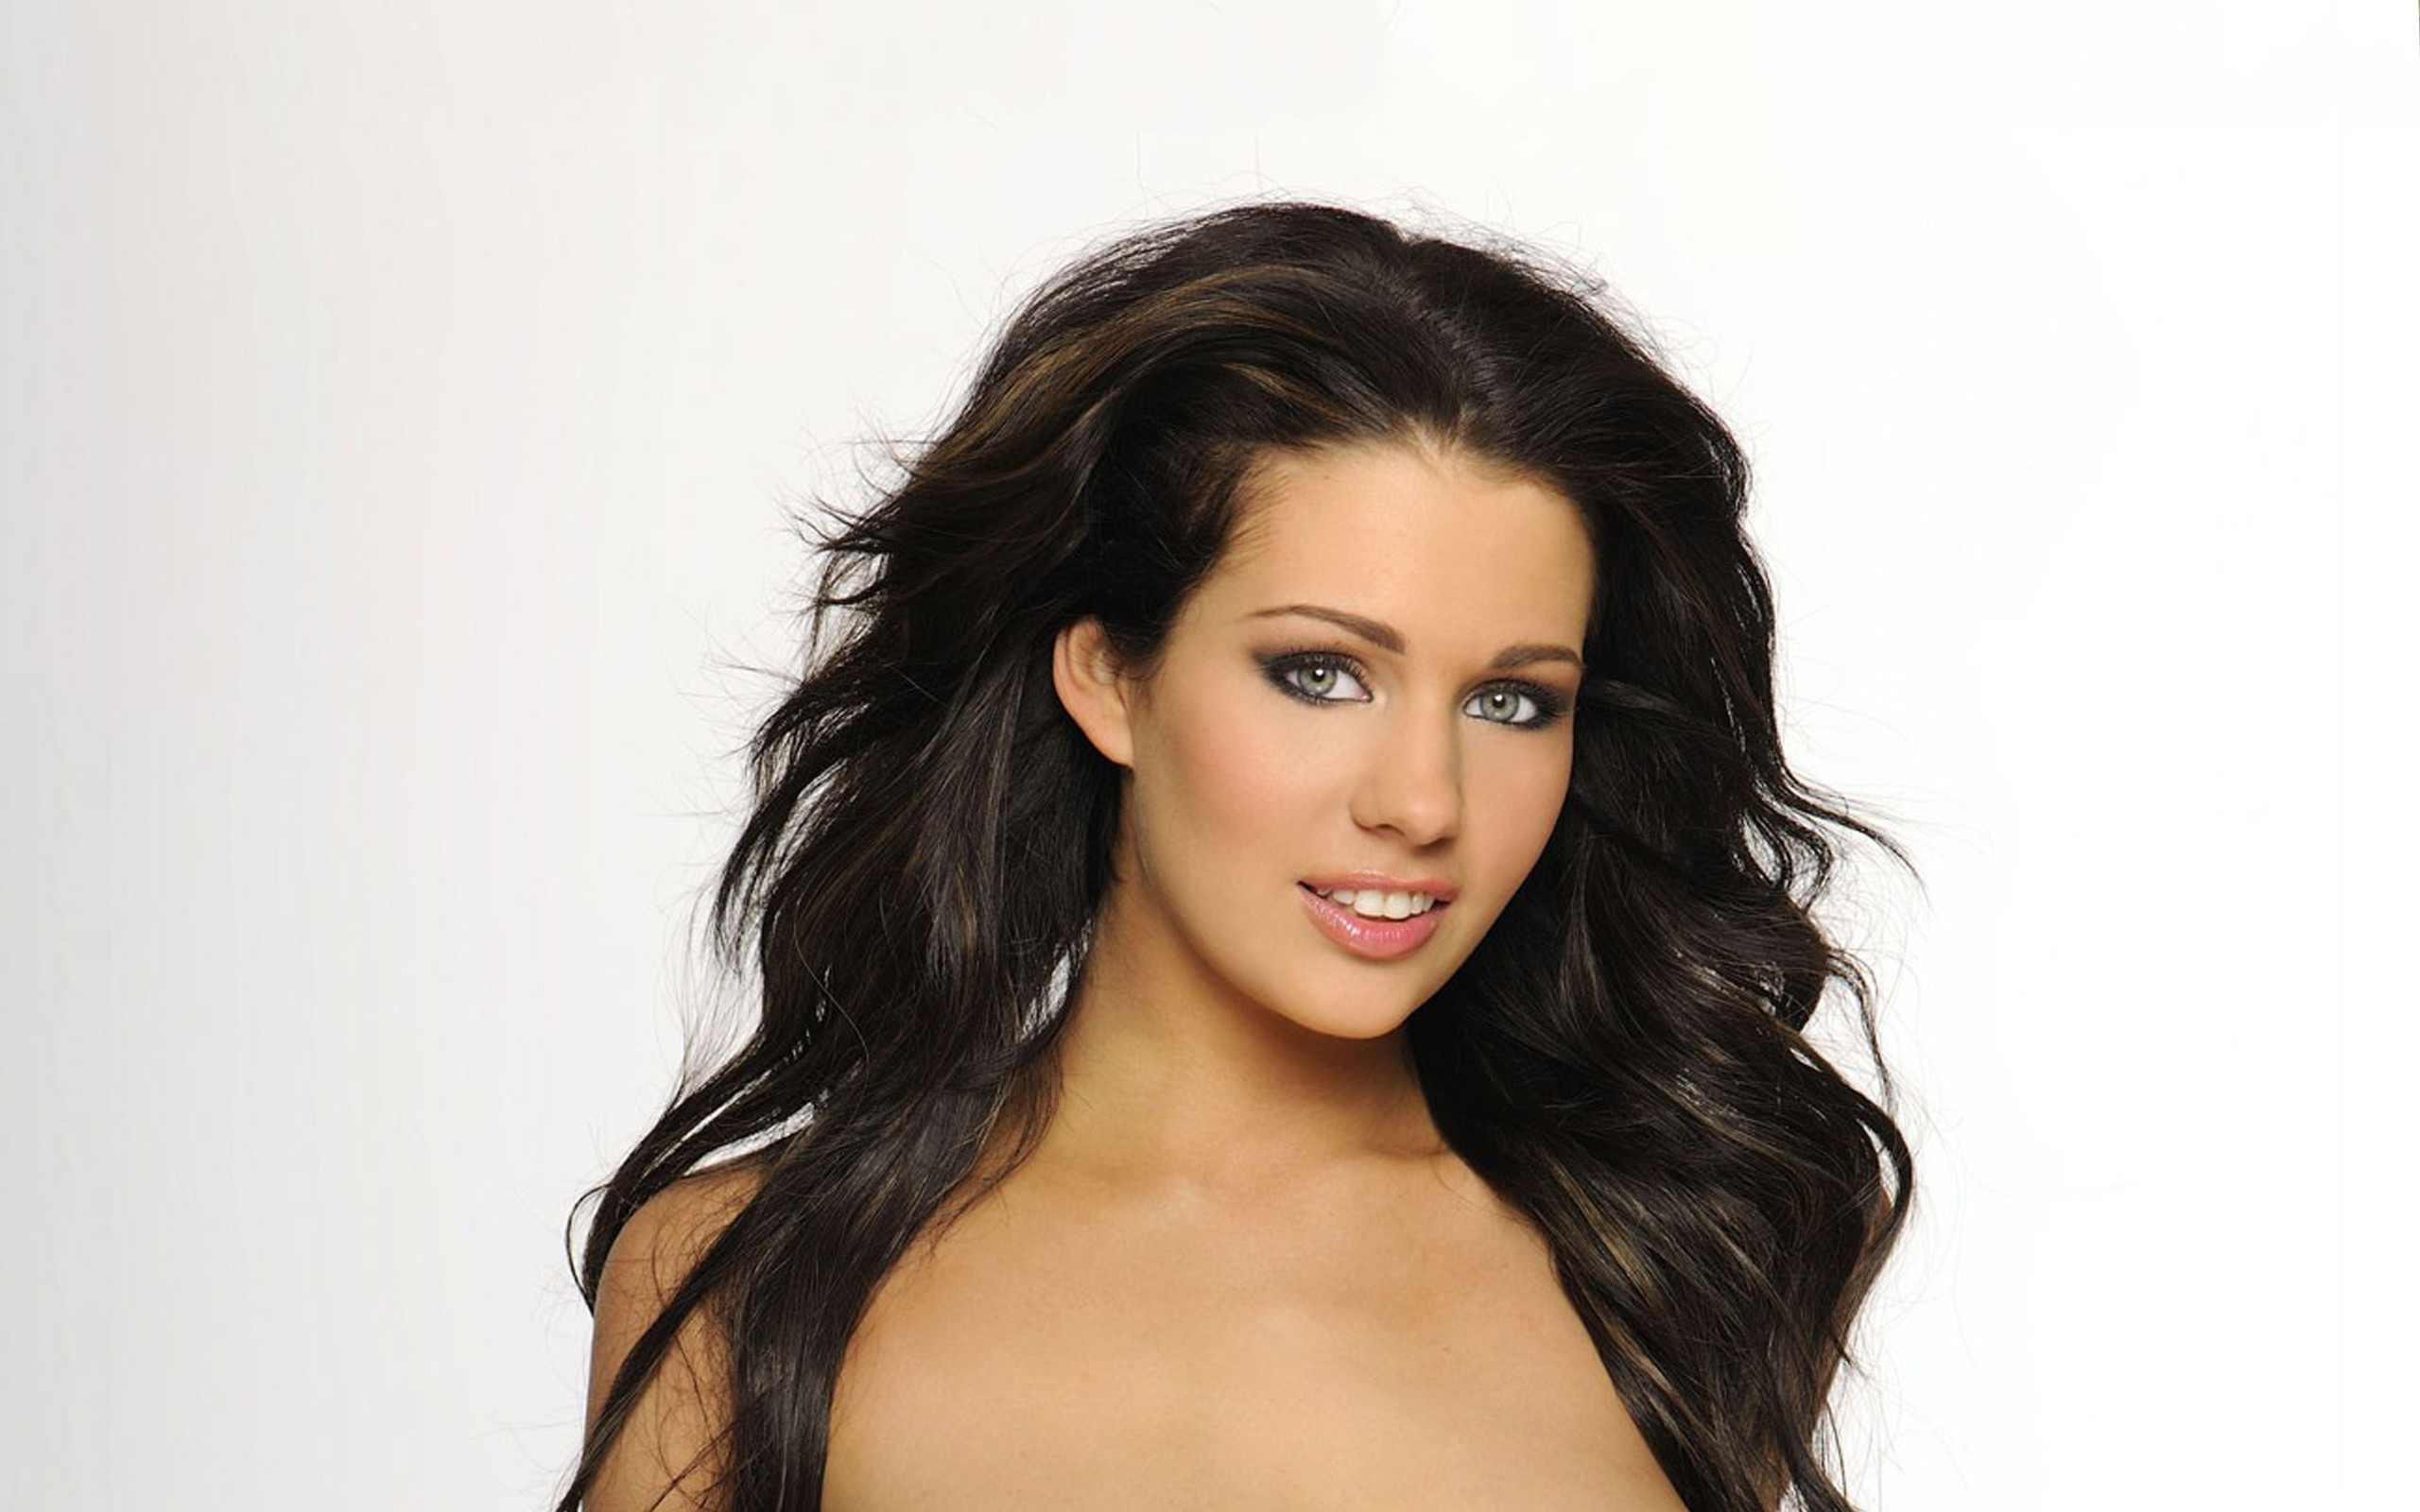 brunettes woman close-up blue HD Wallpaper